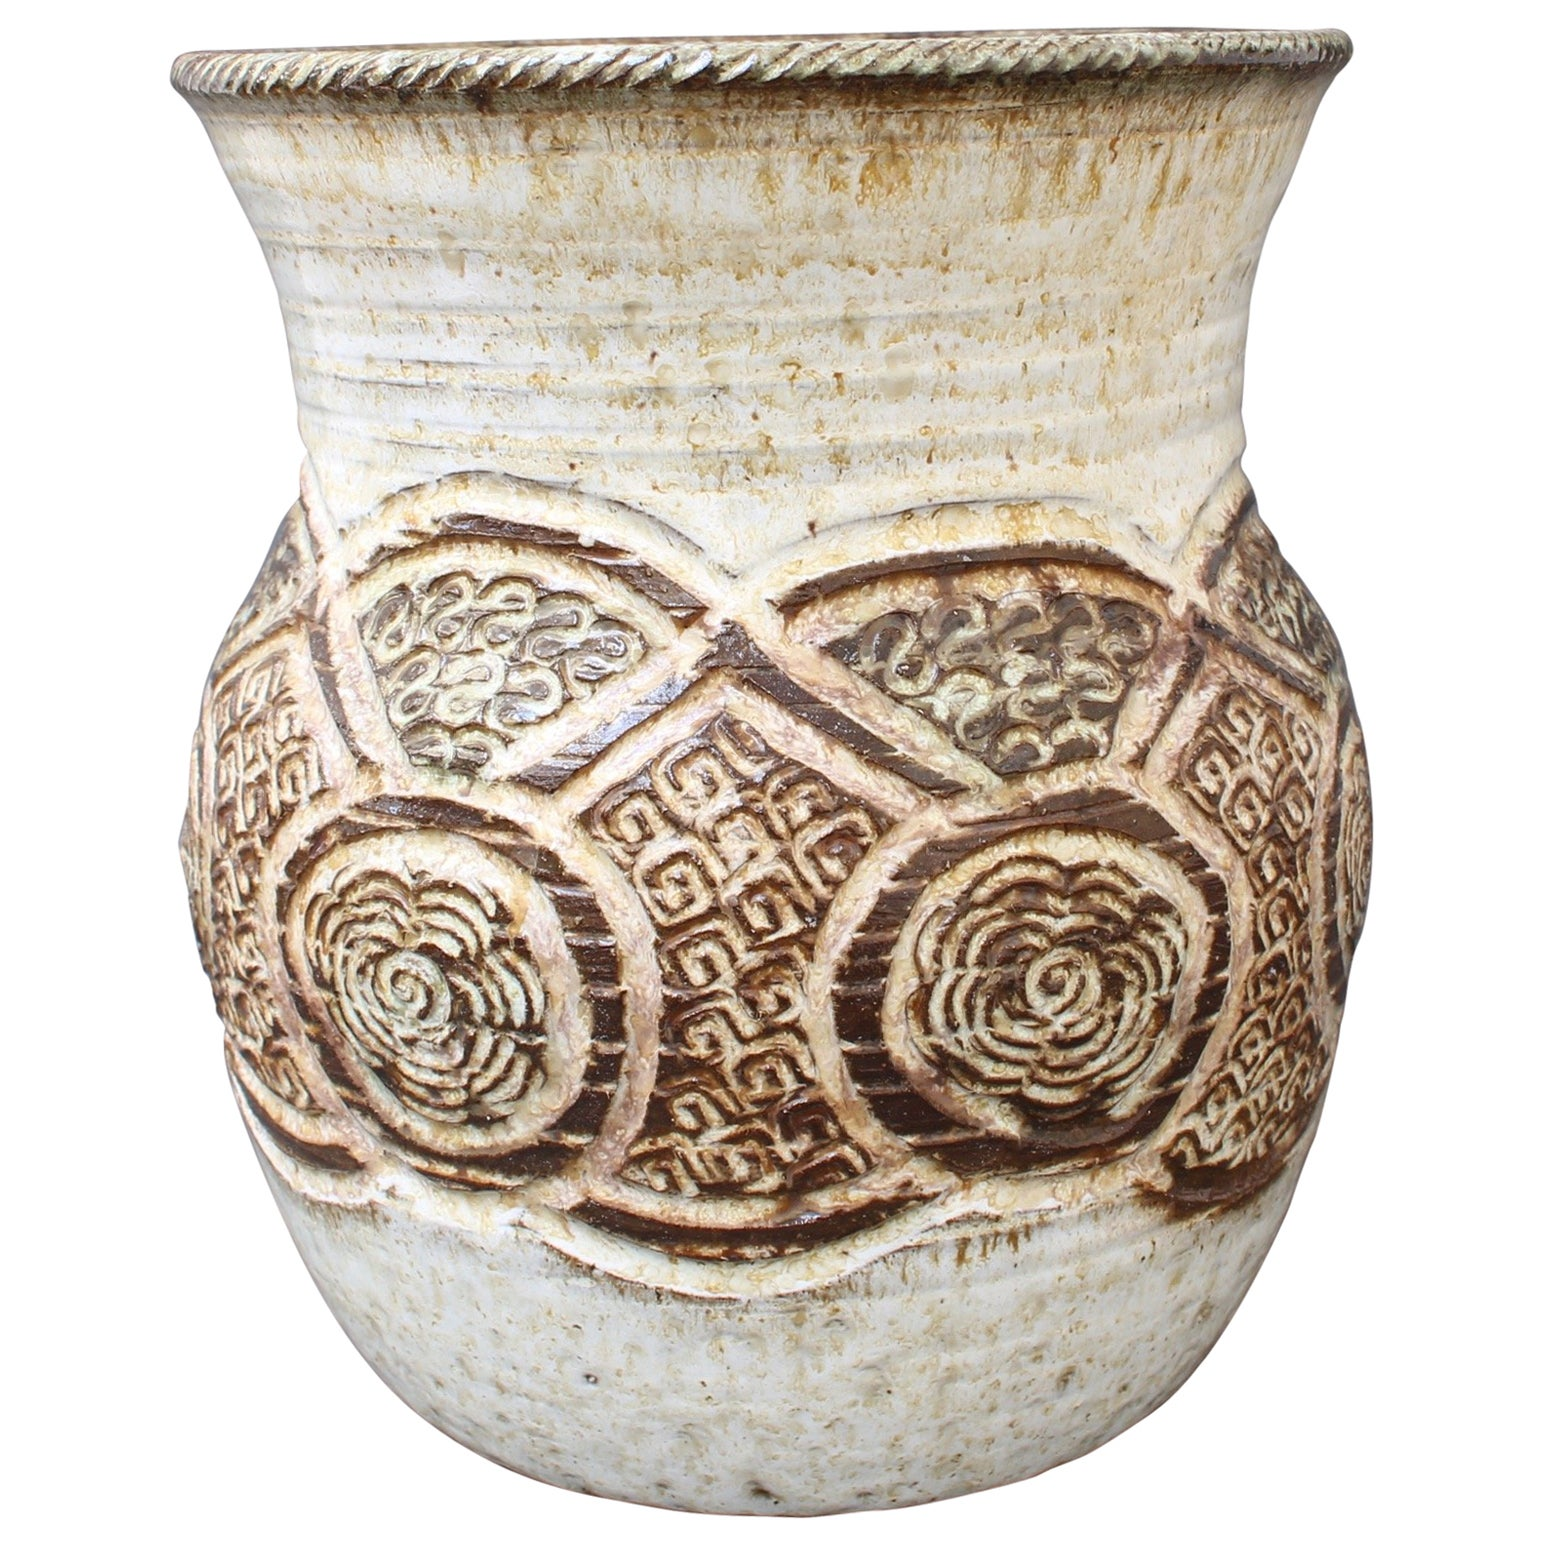 Ceramic Decorative Vase by Marcel Giraud, Vallauris, 'circa 1960s'